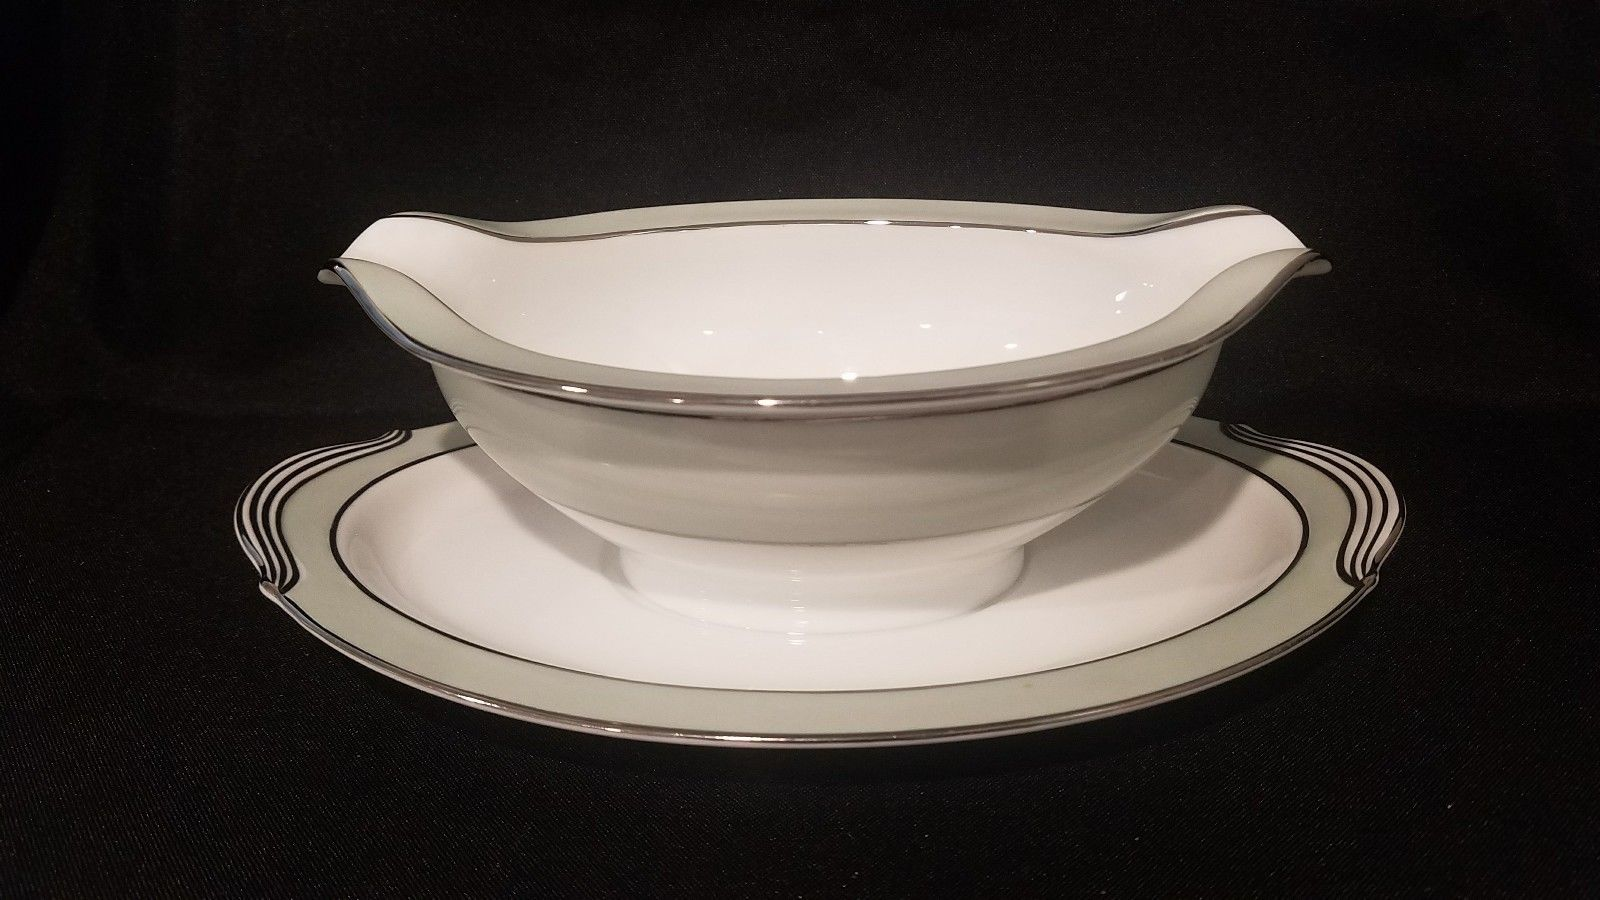 noritake china greencourt gravy bowl with attached plate  $19.99